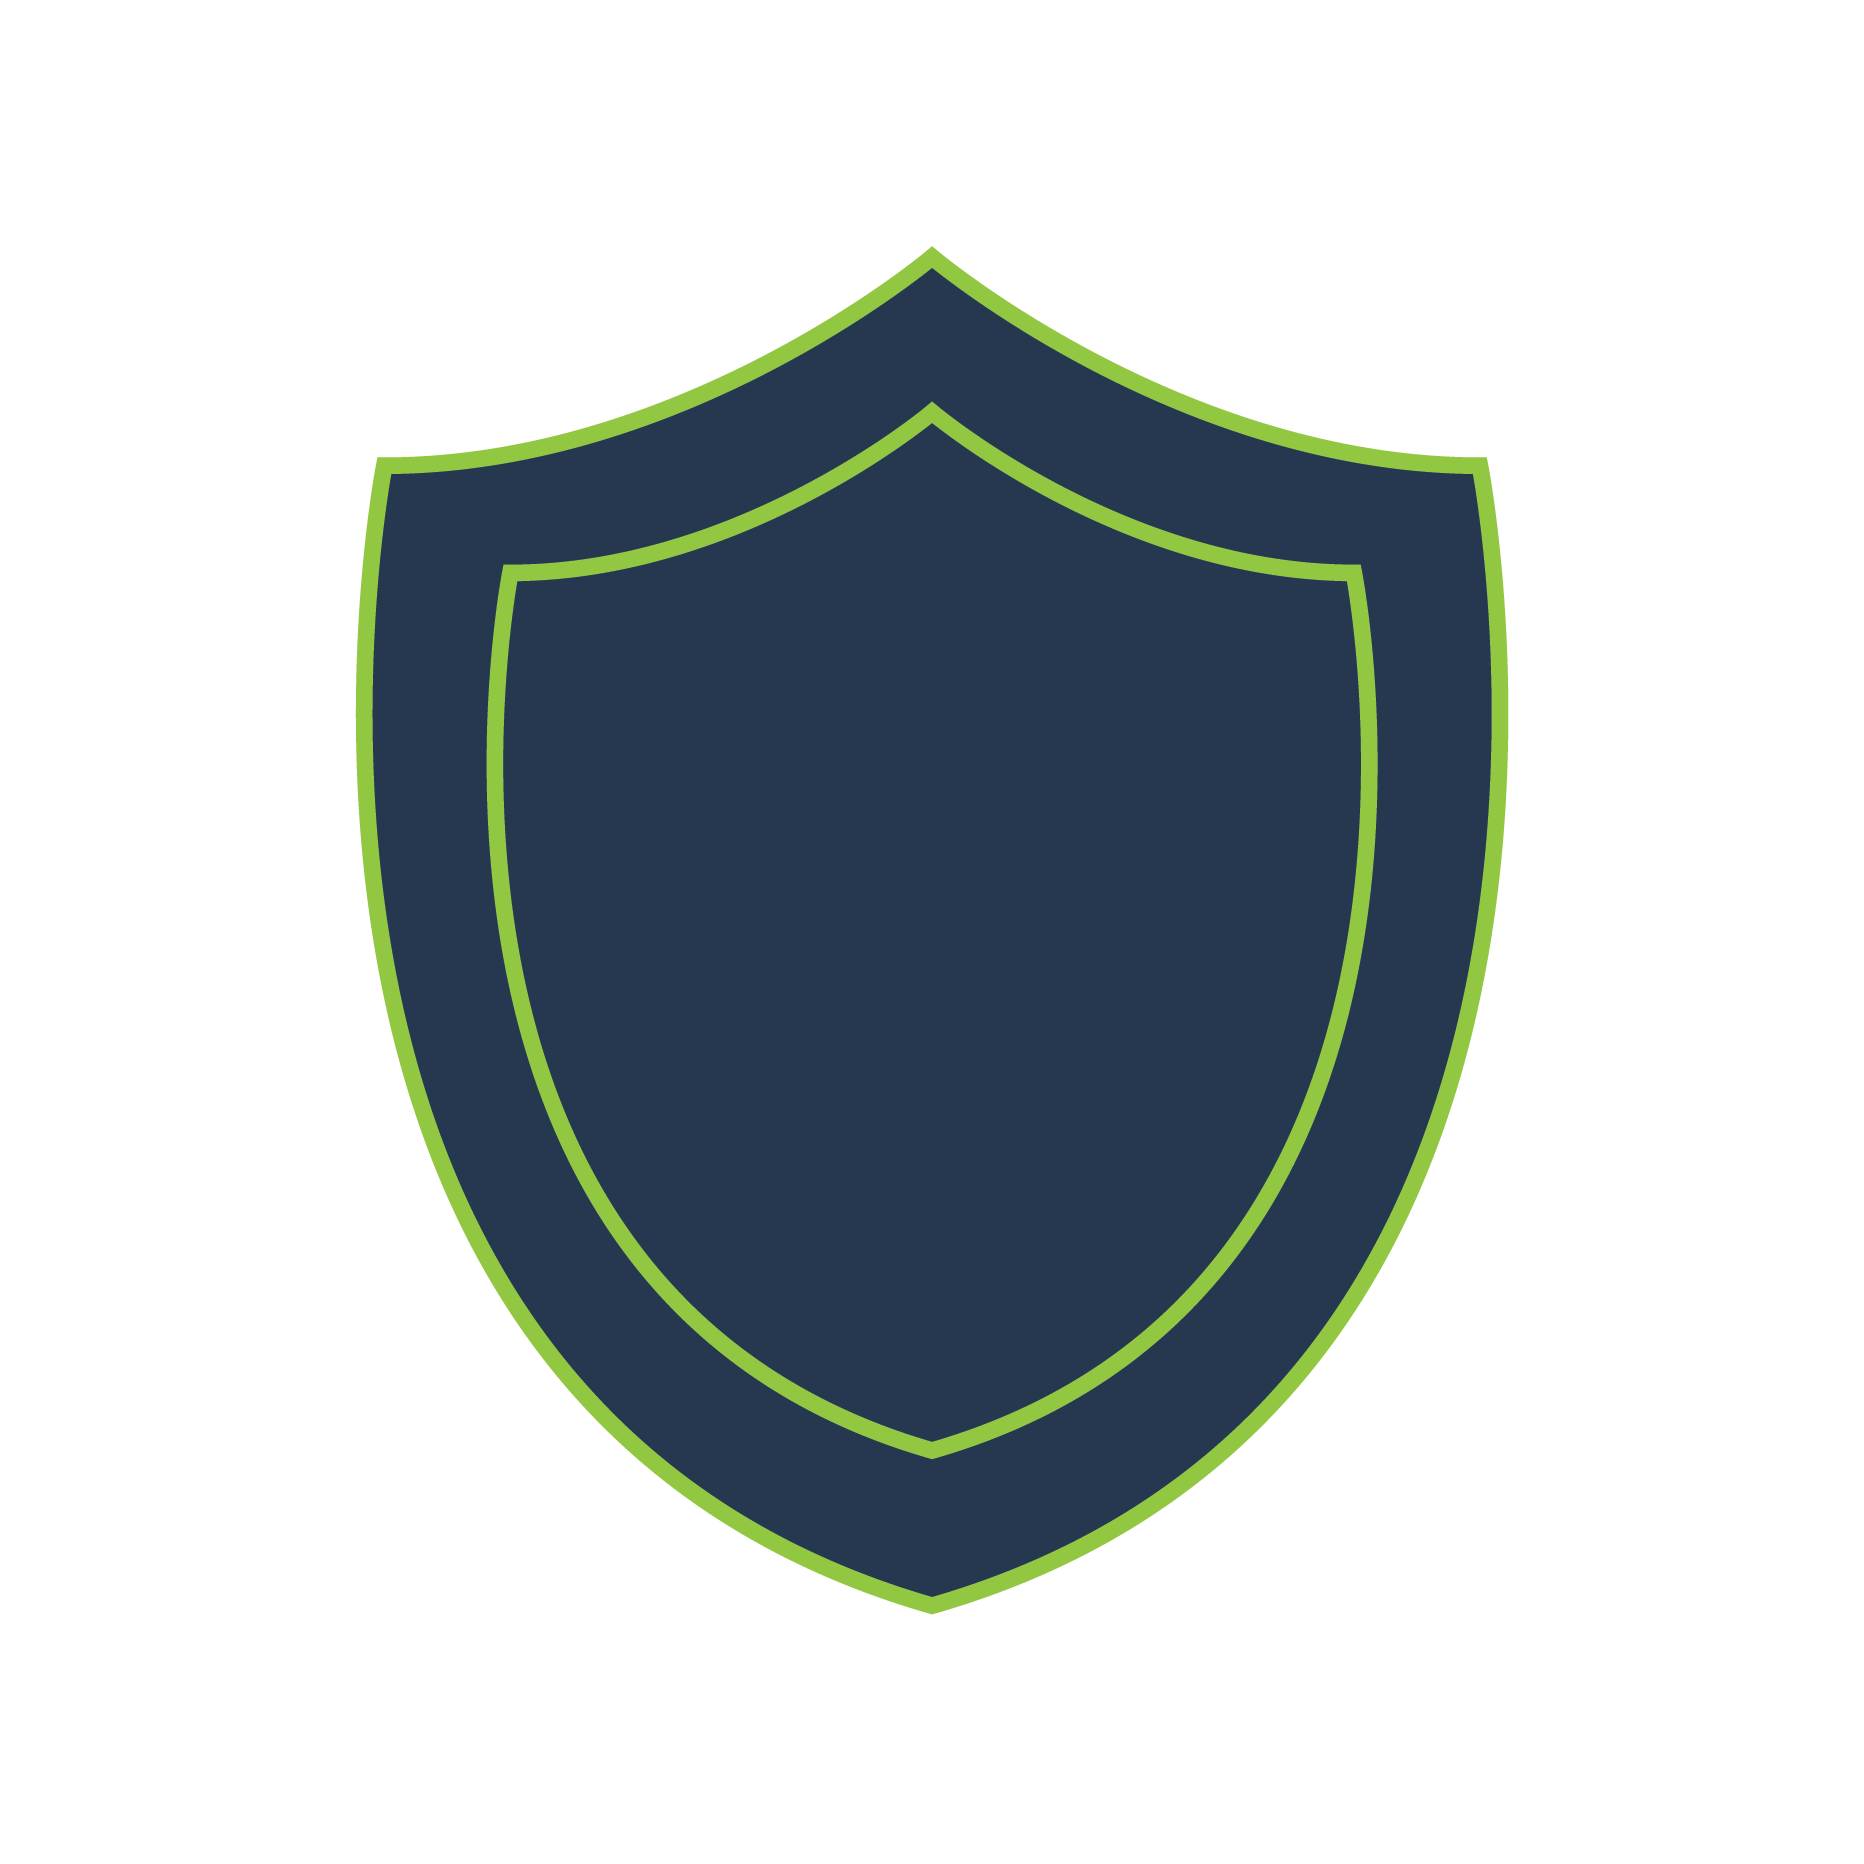 Security Shield-14.png